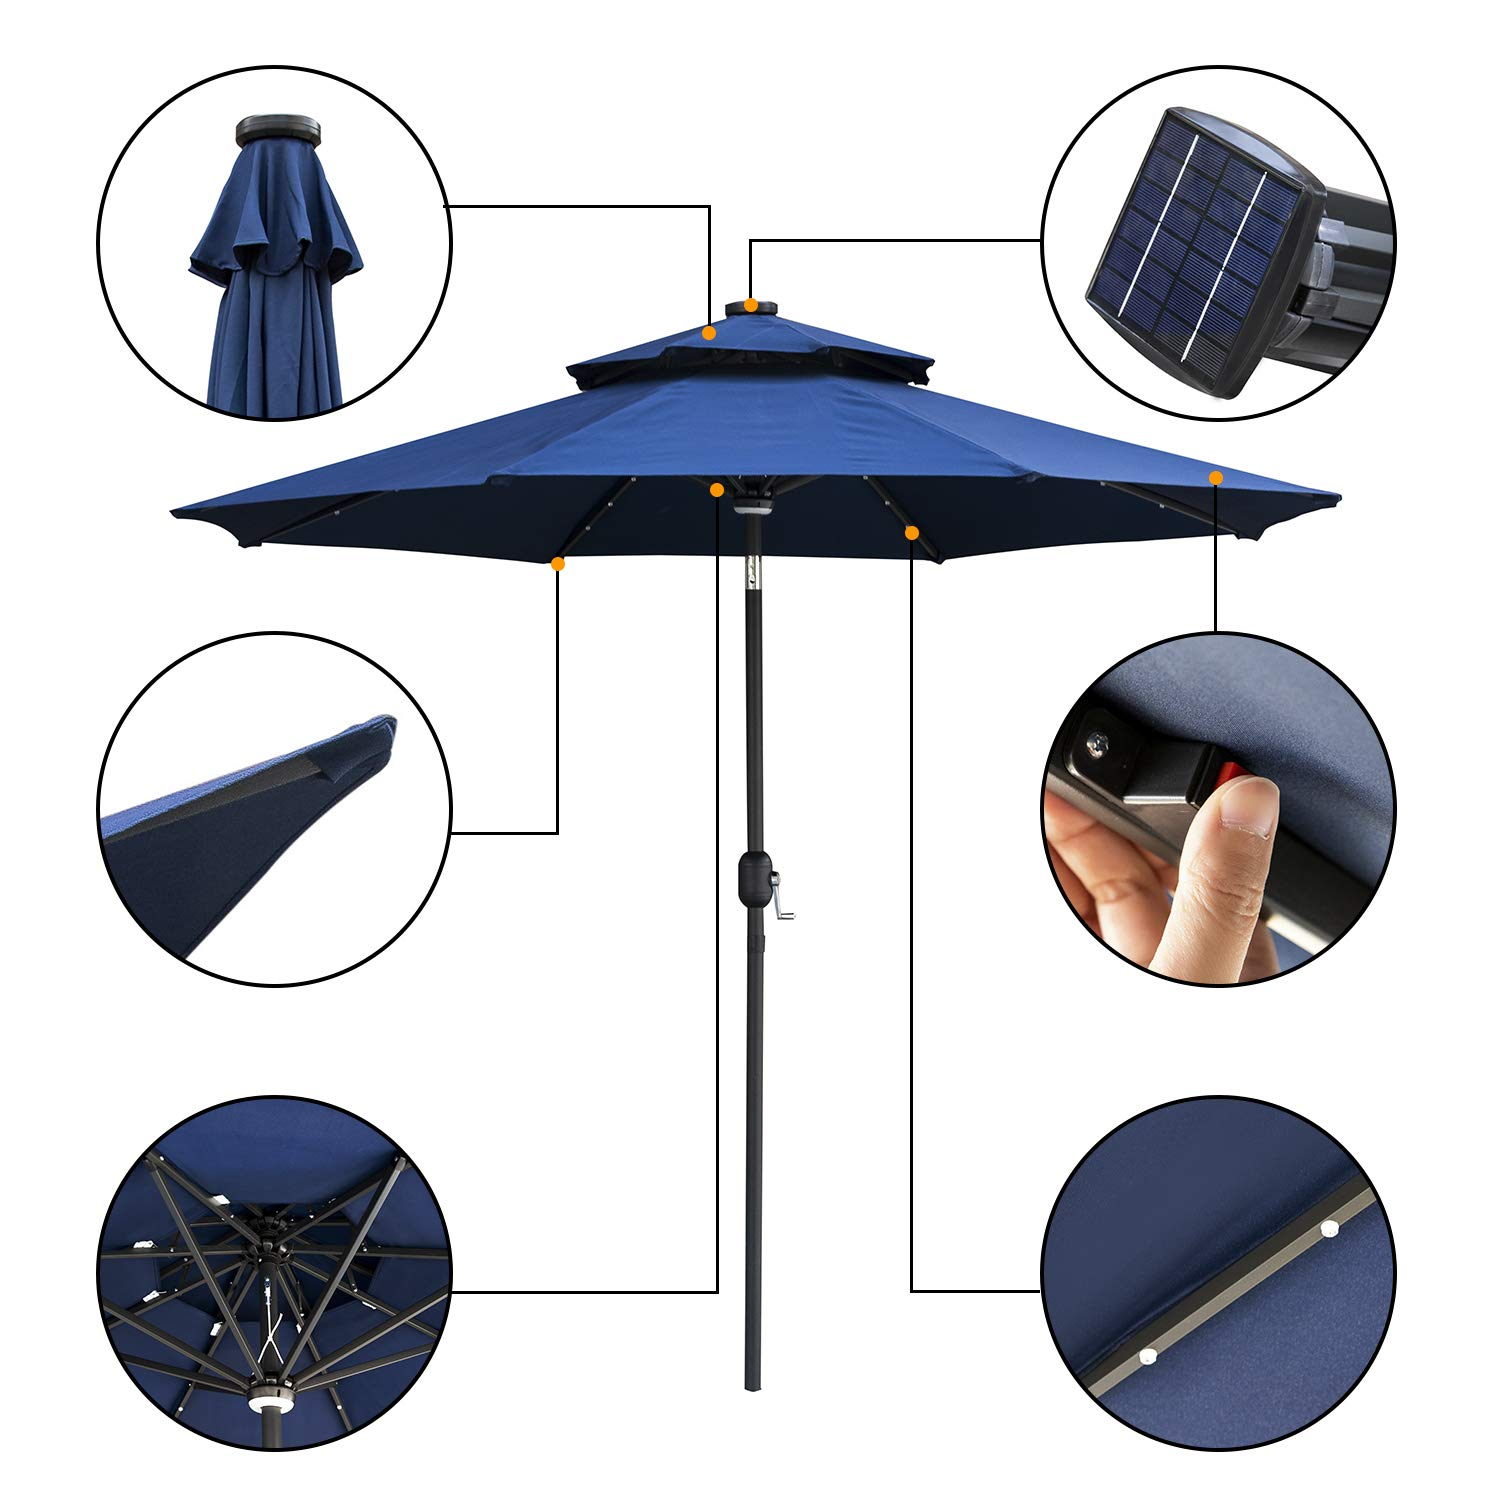 DOIT 9ft Solar LED Lighted Patio Table Umbrella with Crank and 8 Ribs,2 Layers with Ventilation,Tilt Adjustment Outdoor Umbrella with Fade Resistant Water Proof Fabric and Push Button,Without Base